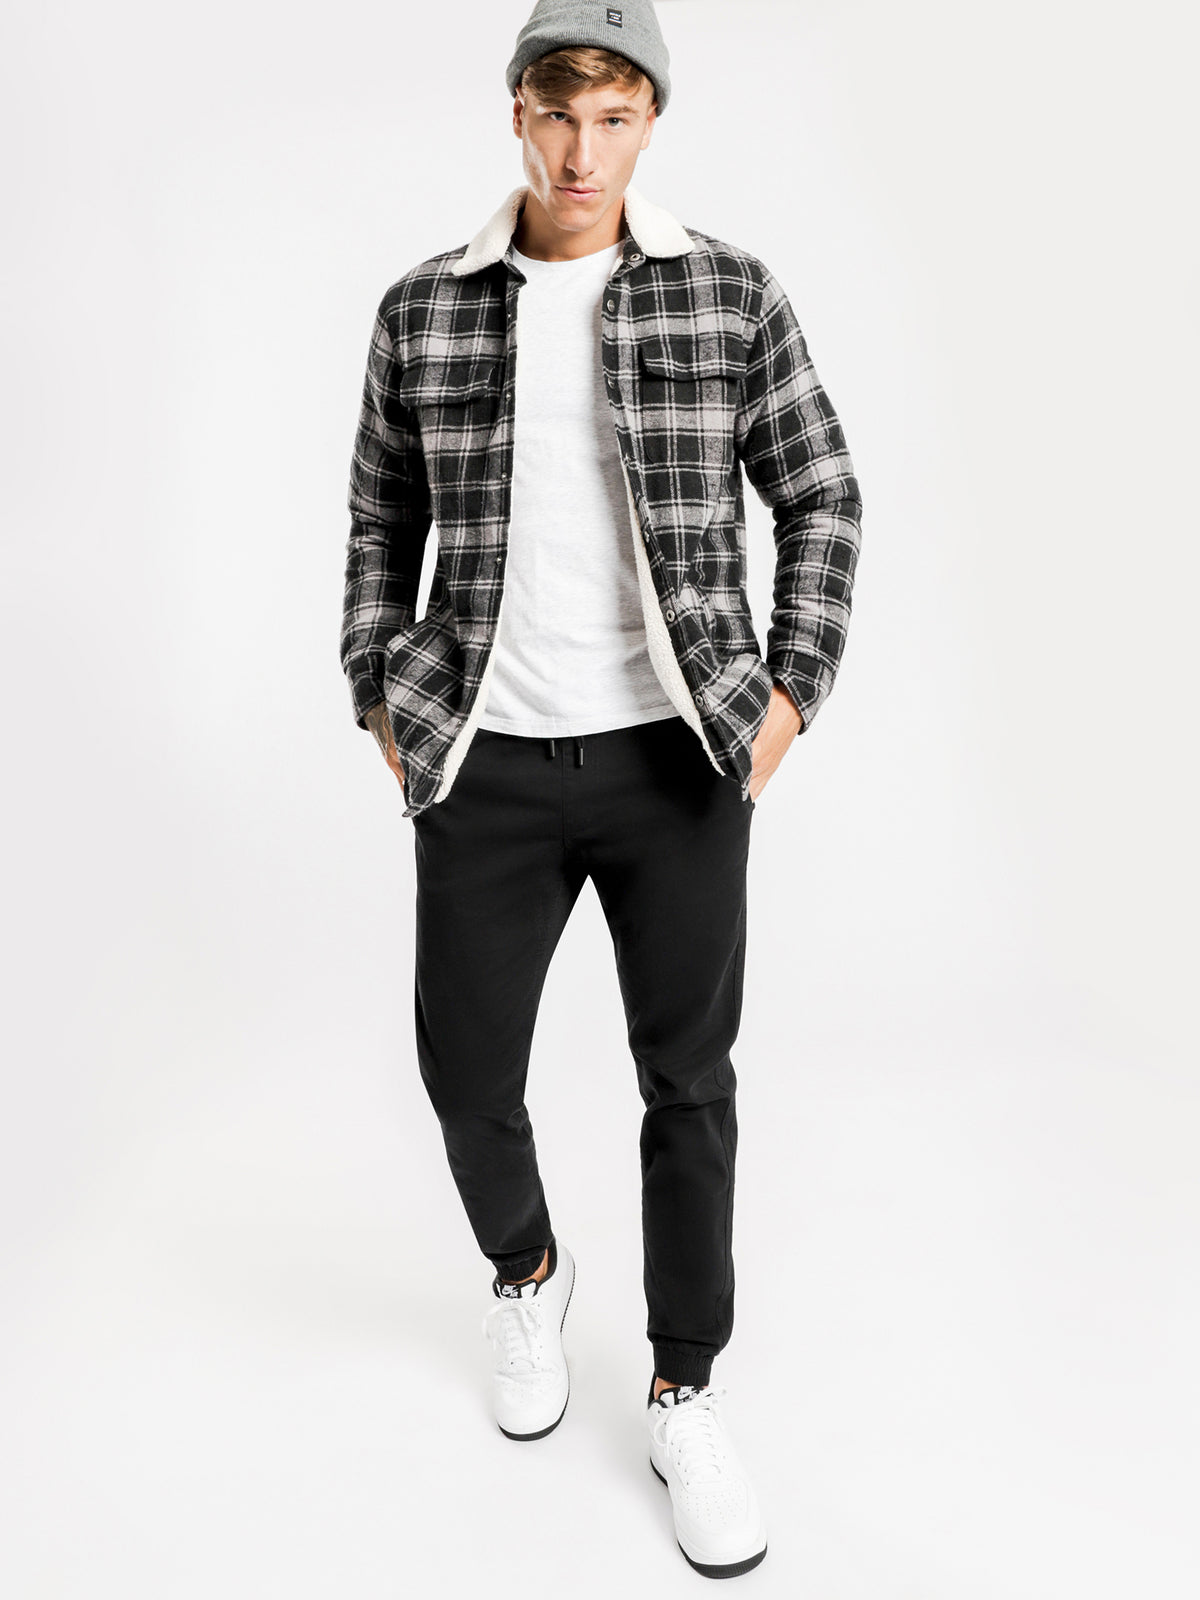 Knox Plaid Sherpa Jacket in Charcoal